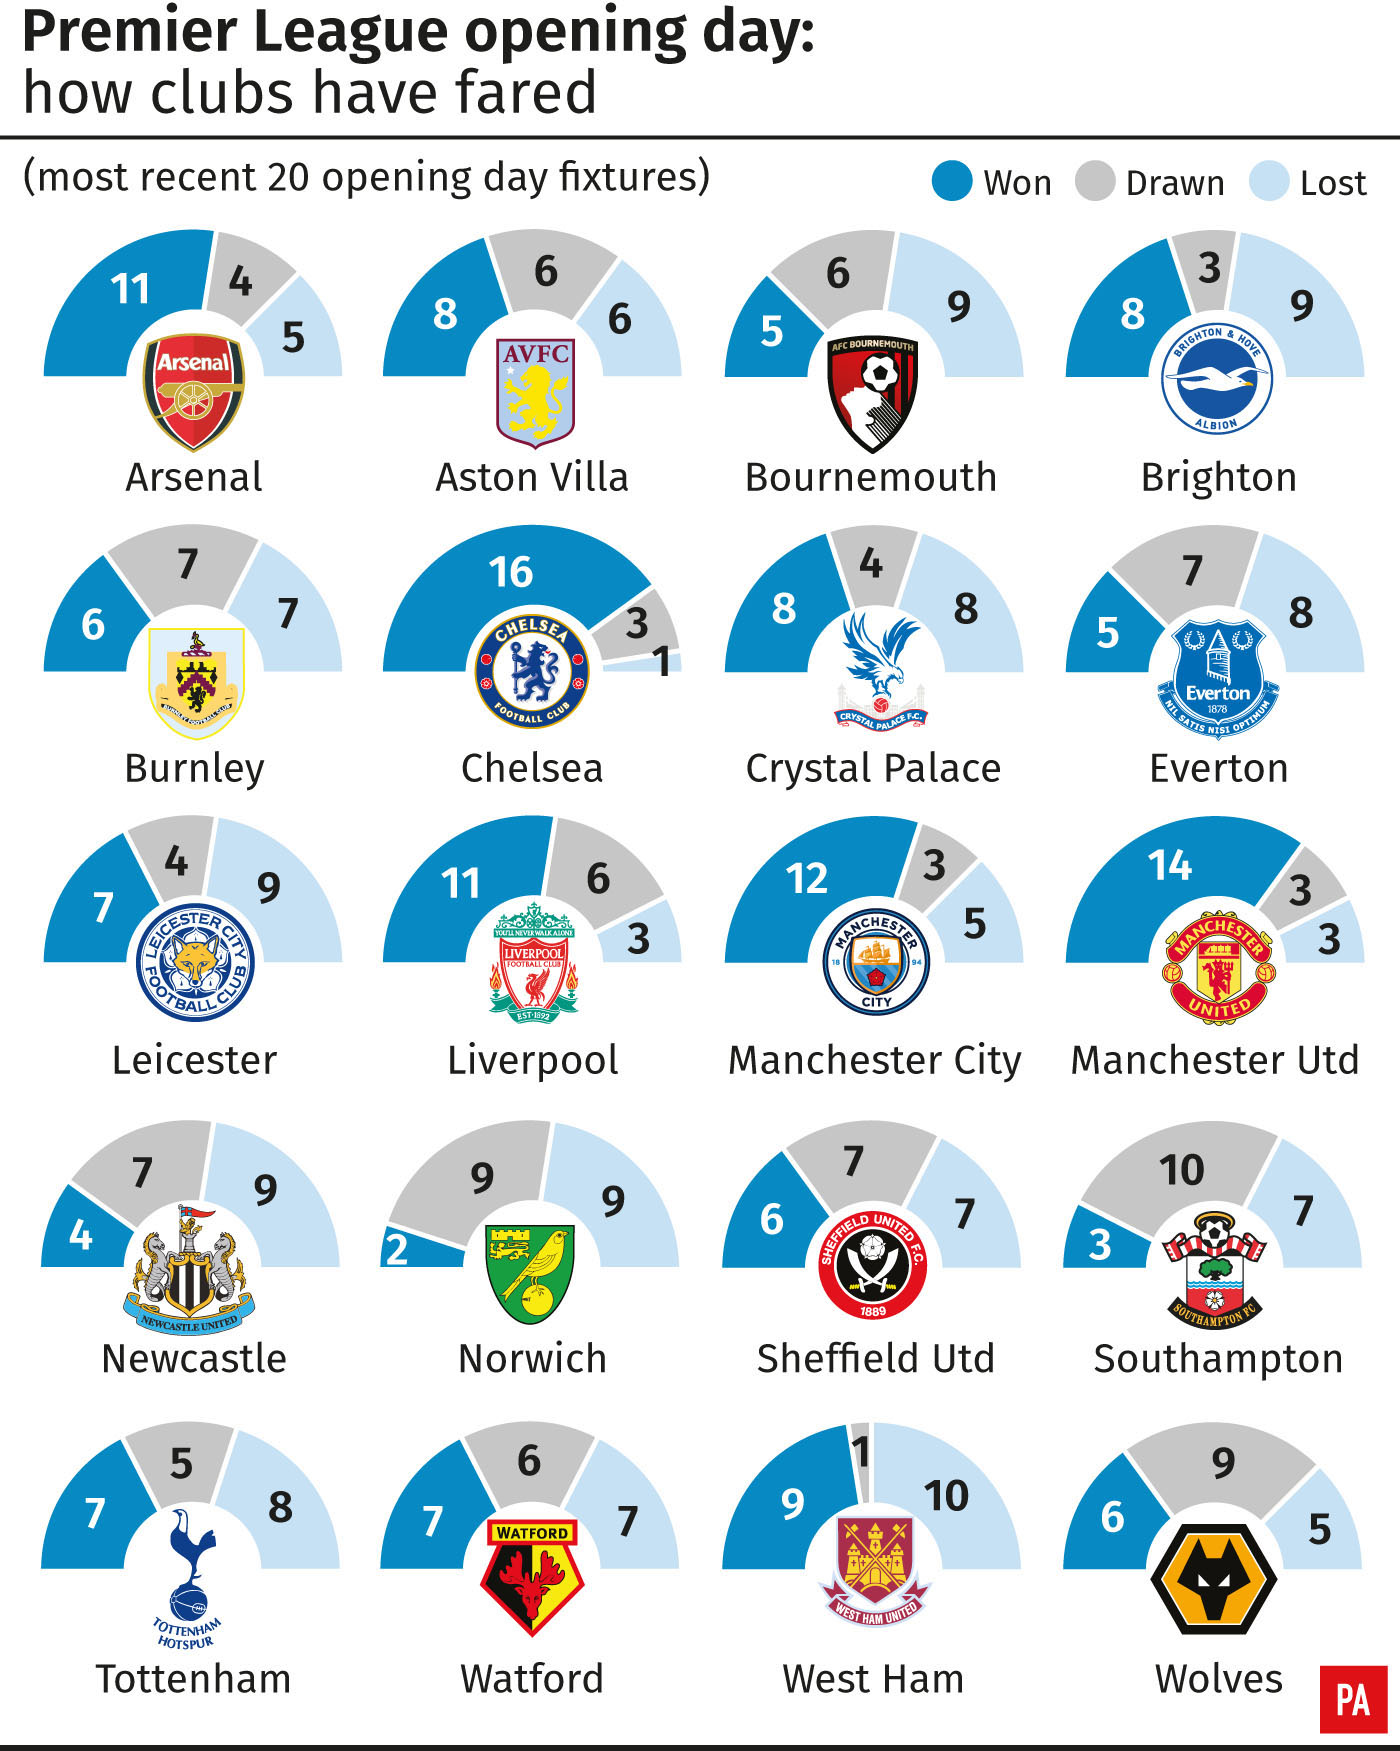 Premier League opening day: how clubs have fared